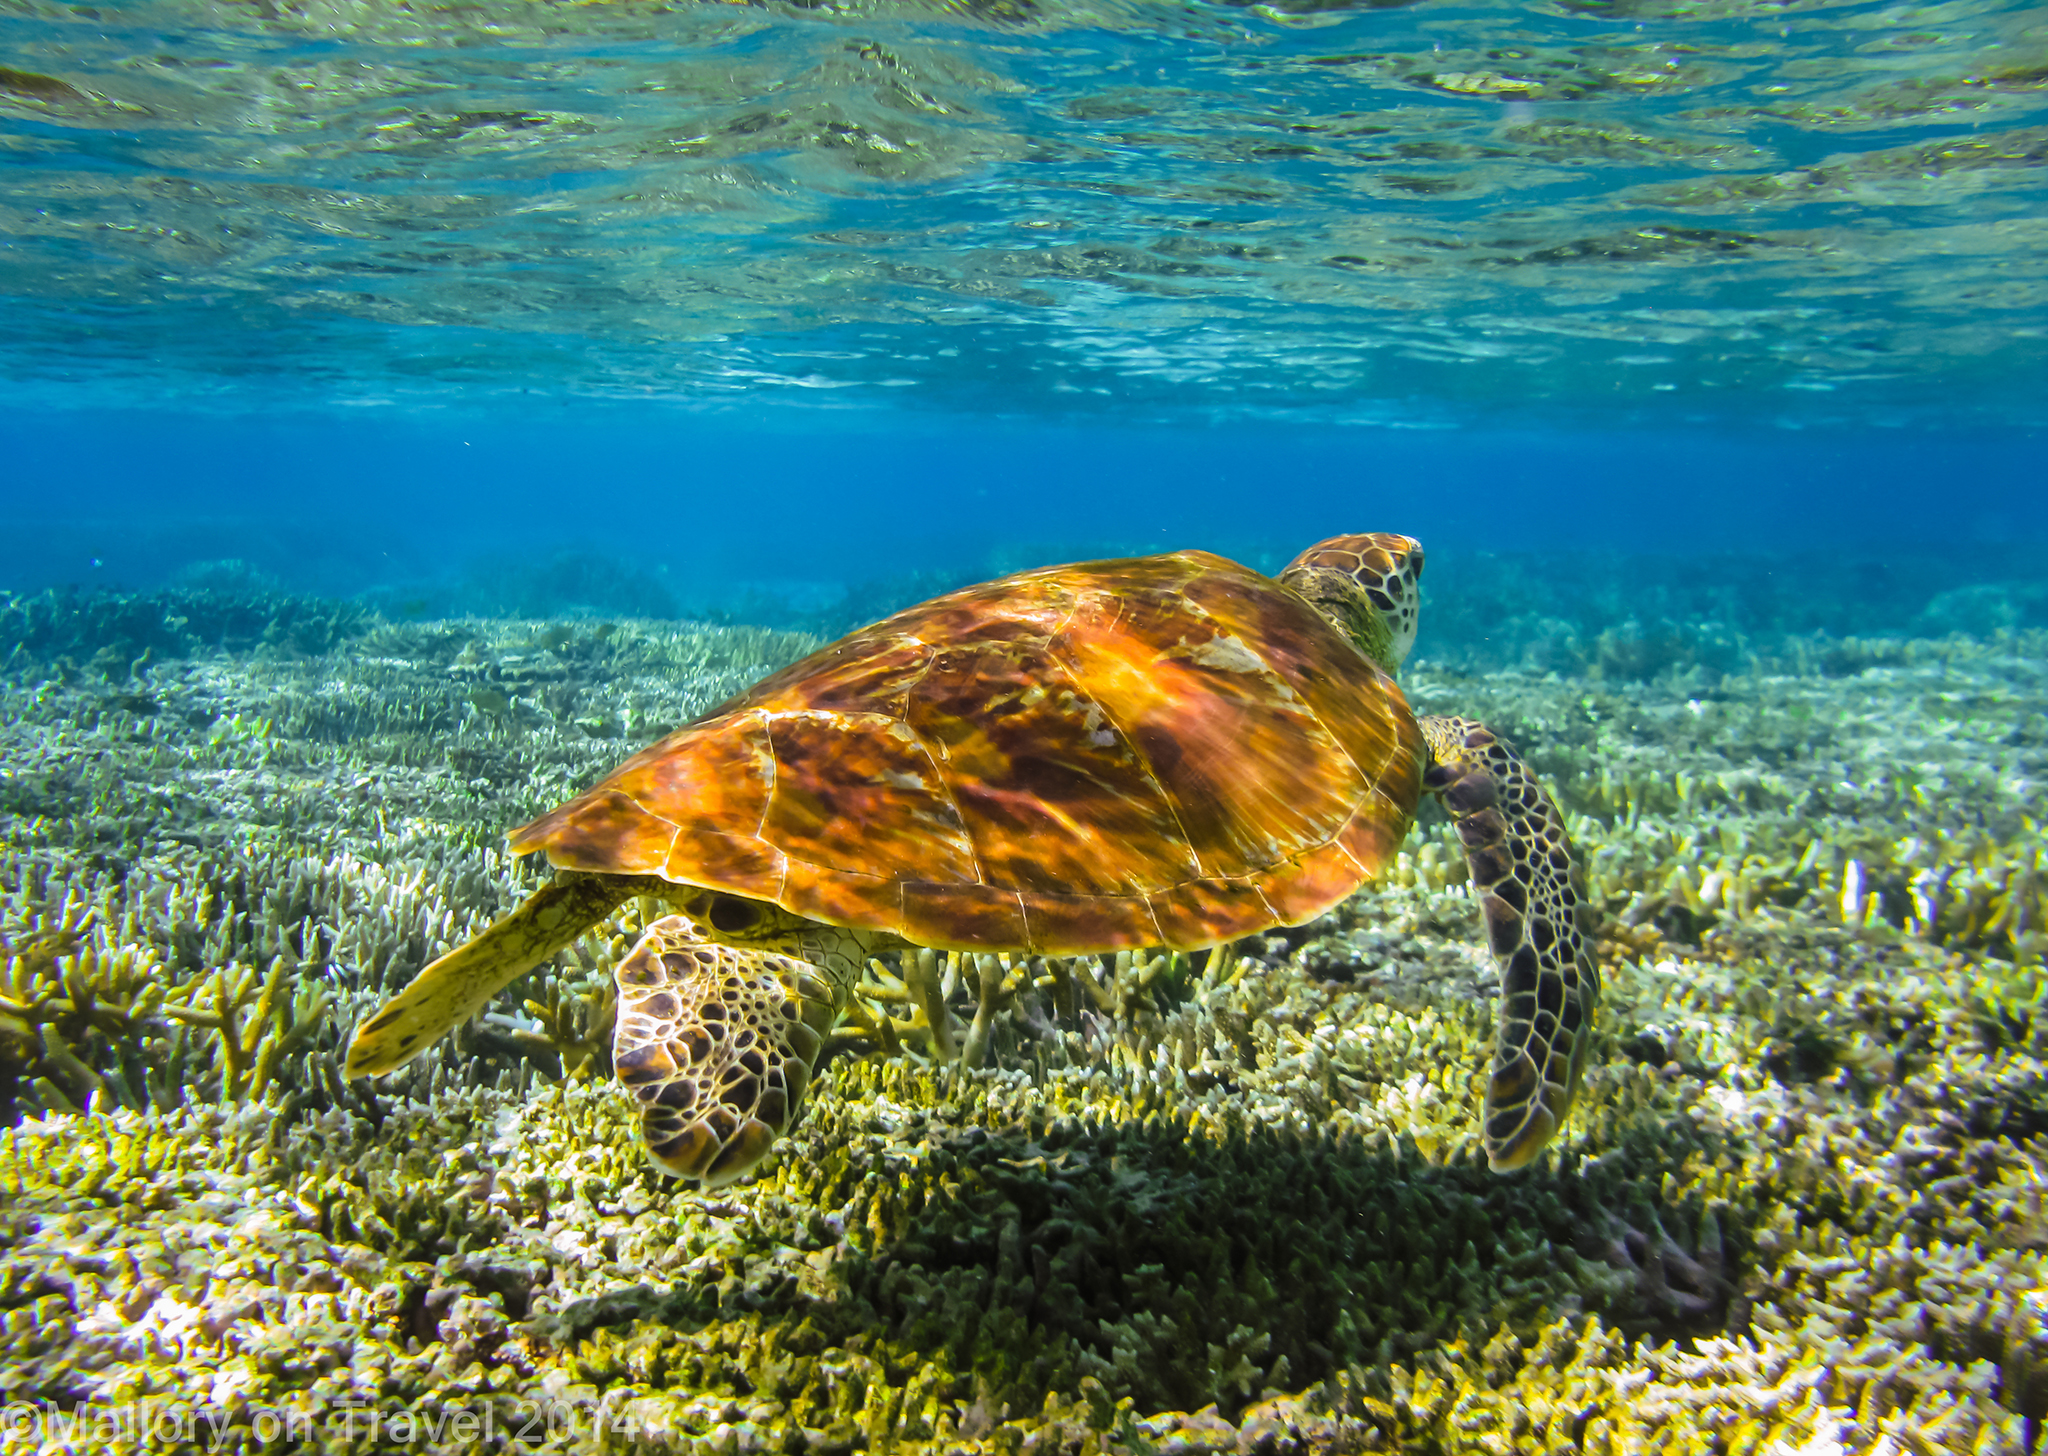 A green turtle on the Great Barrier Reef, Queensland in Australia on Mallory on Travel adventure travel, photography, travel iain-mallory-300-34